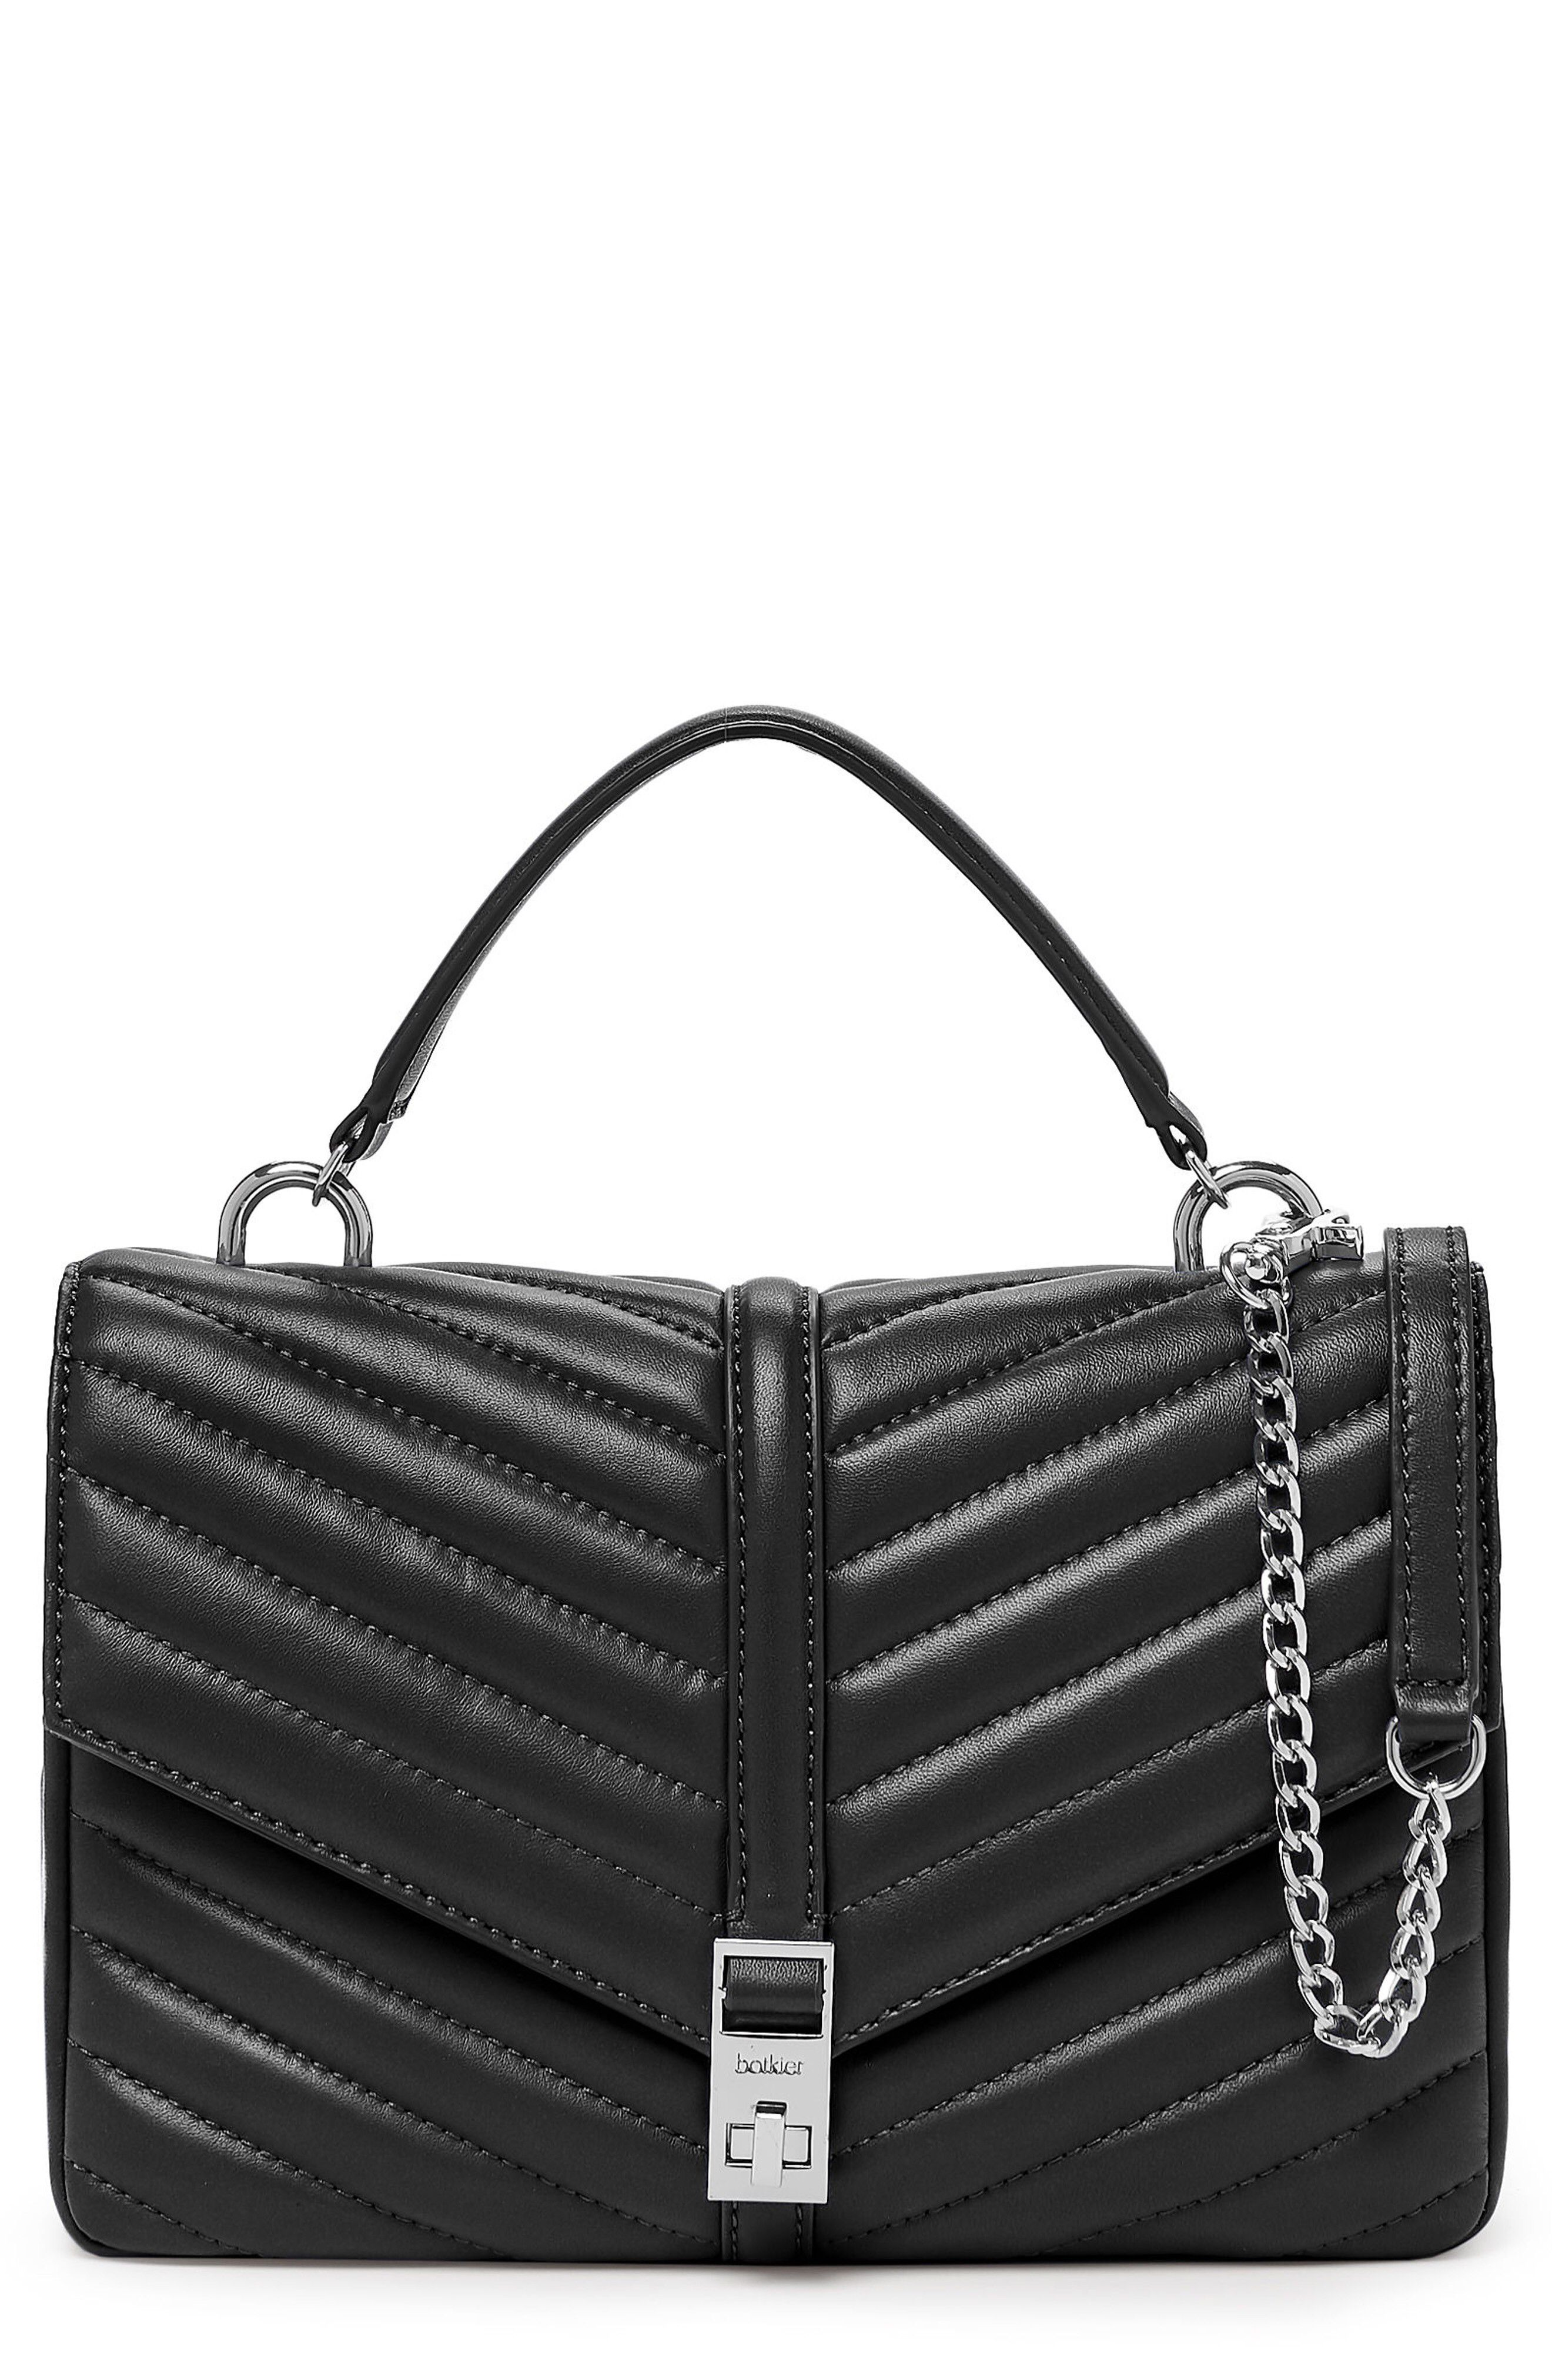 Botkier Dakota Quilted Leather Top Handle Bag Available At Nordstrom